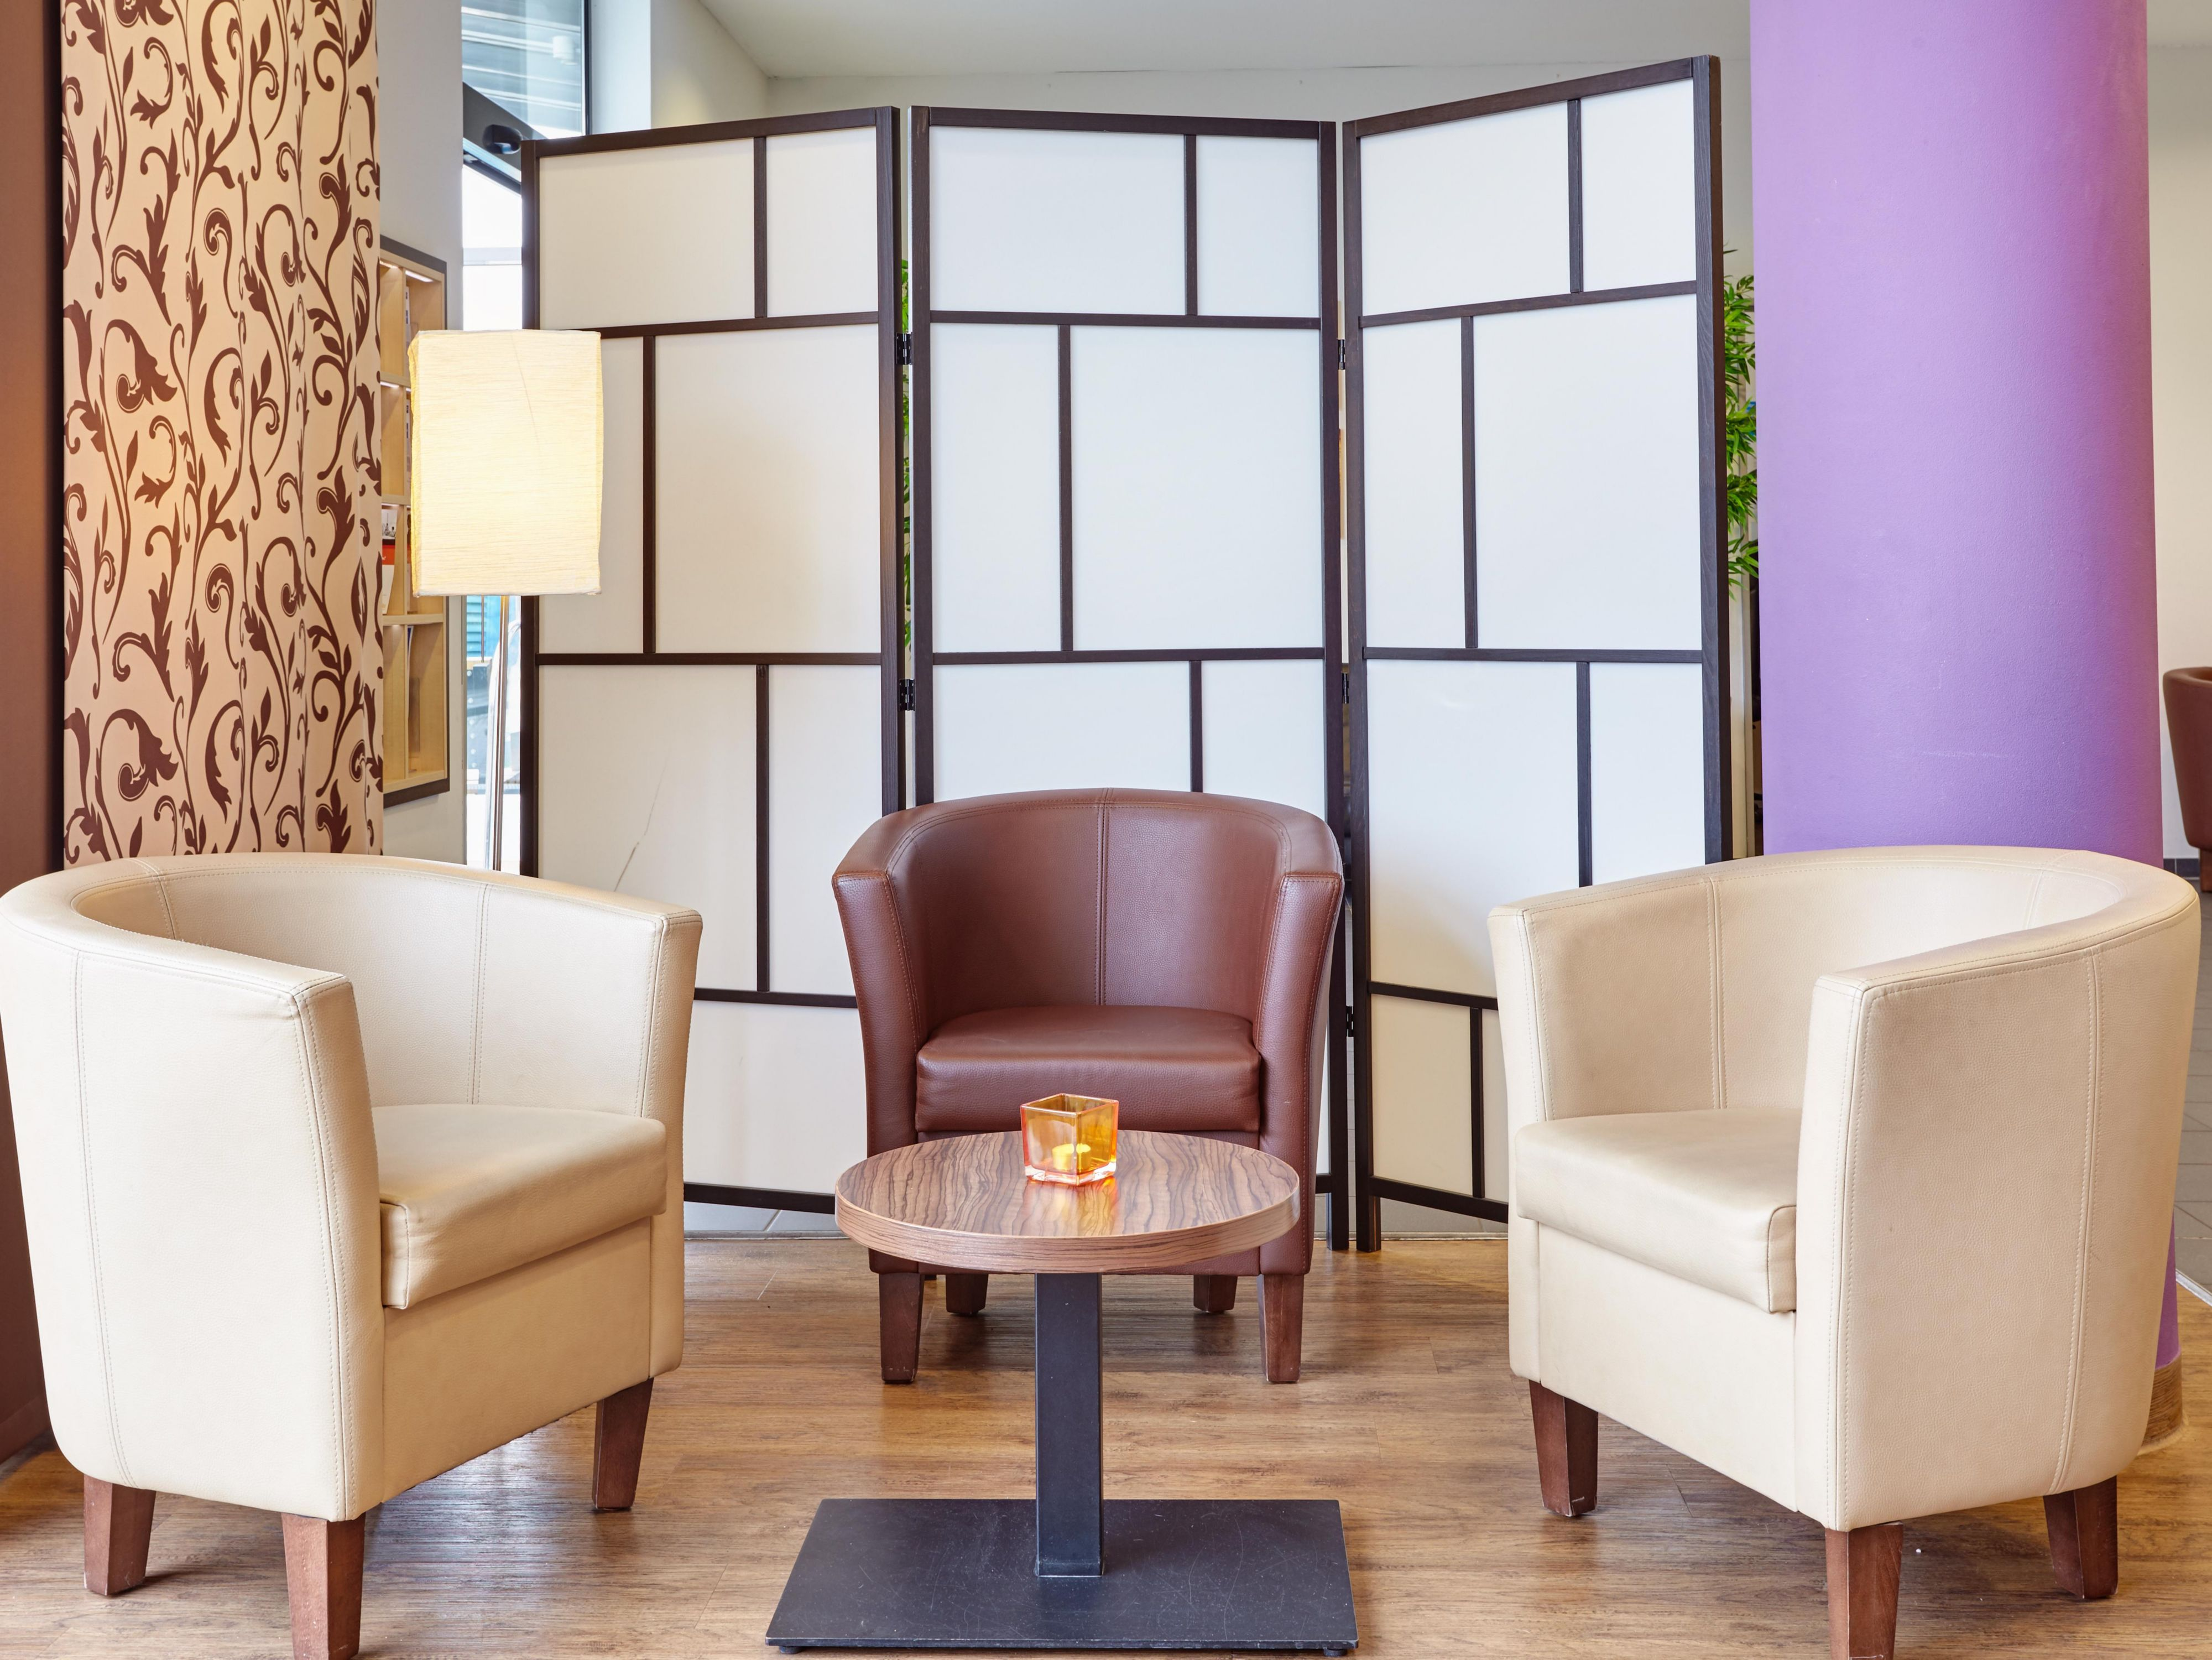 Kick back in our cozy Lobby Seating Area